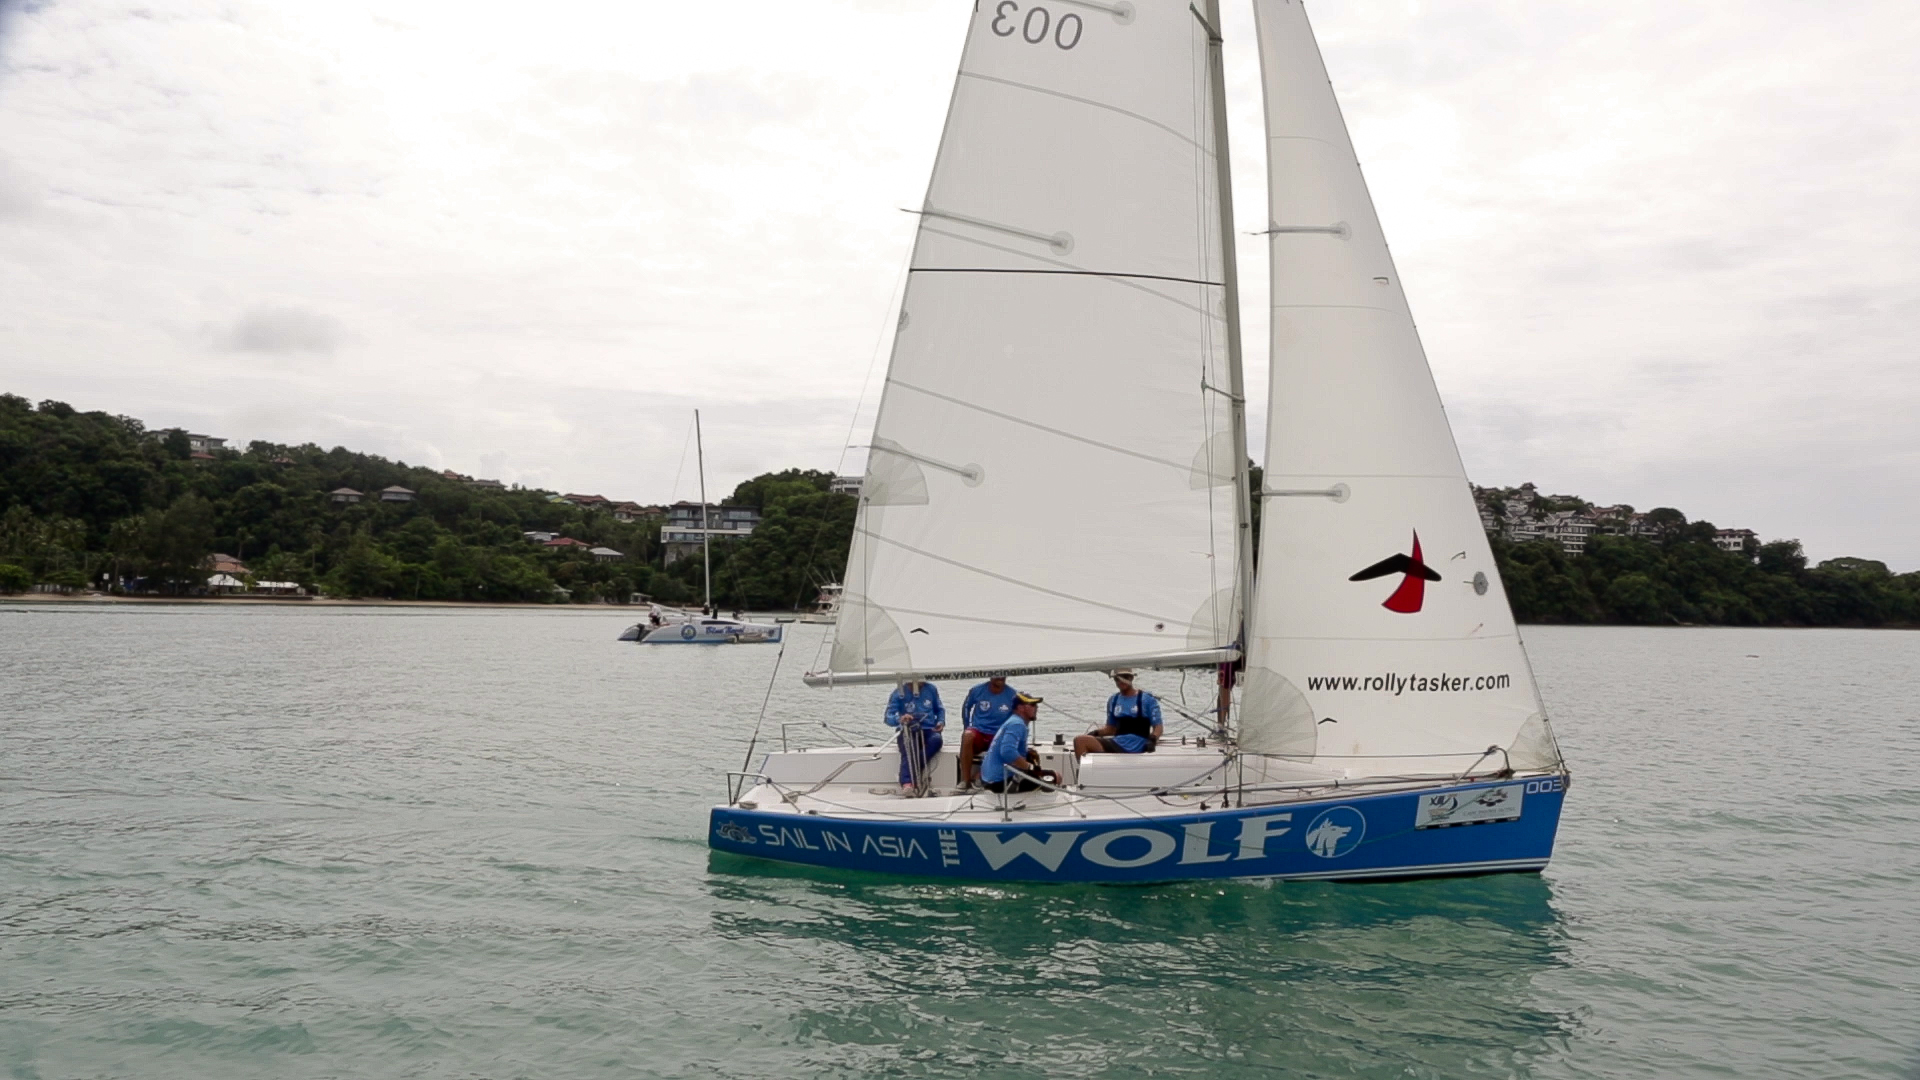 SAIL IN ASIA - keelboat